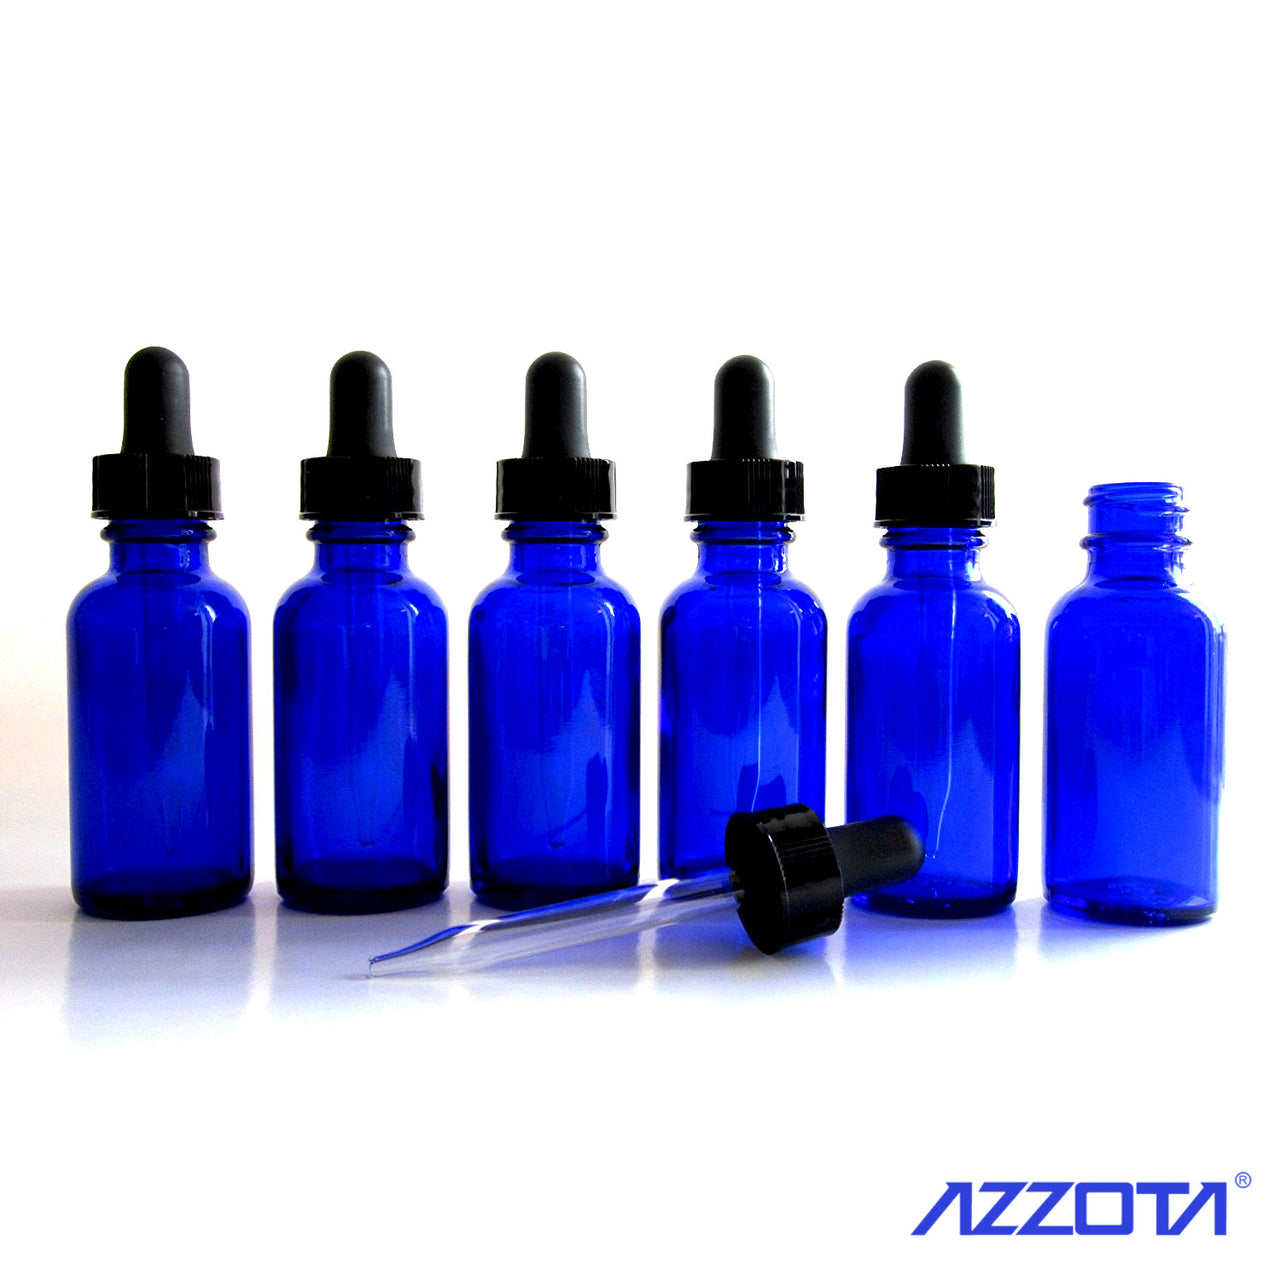 Blue Glass Bottles with Glass Eye Dropper, 15ml / 1/2oz for oils or other liquids requiring a dropper